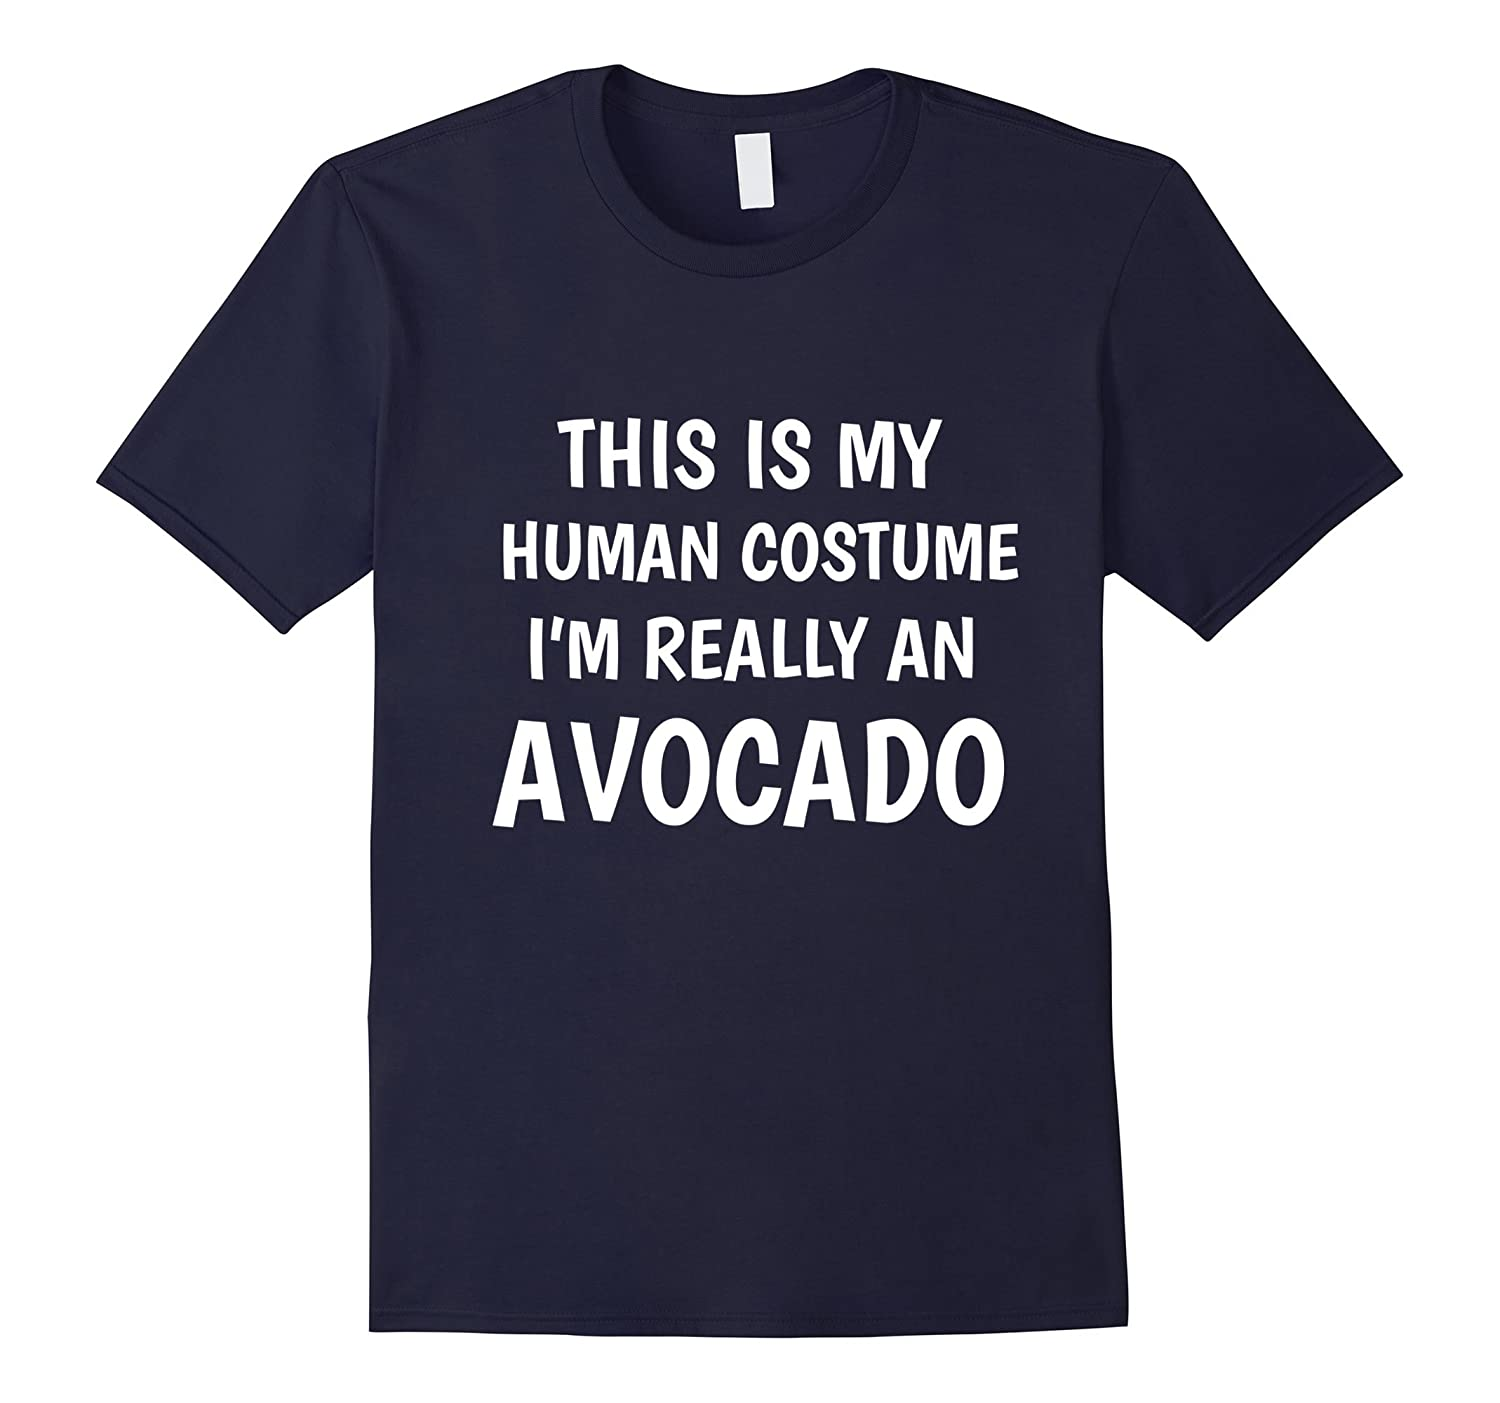 This Is My Human Costume I'm Really An Avocado Funny T-Shirt-FL